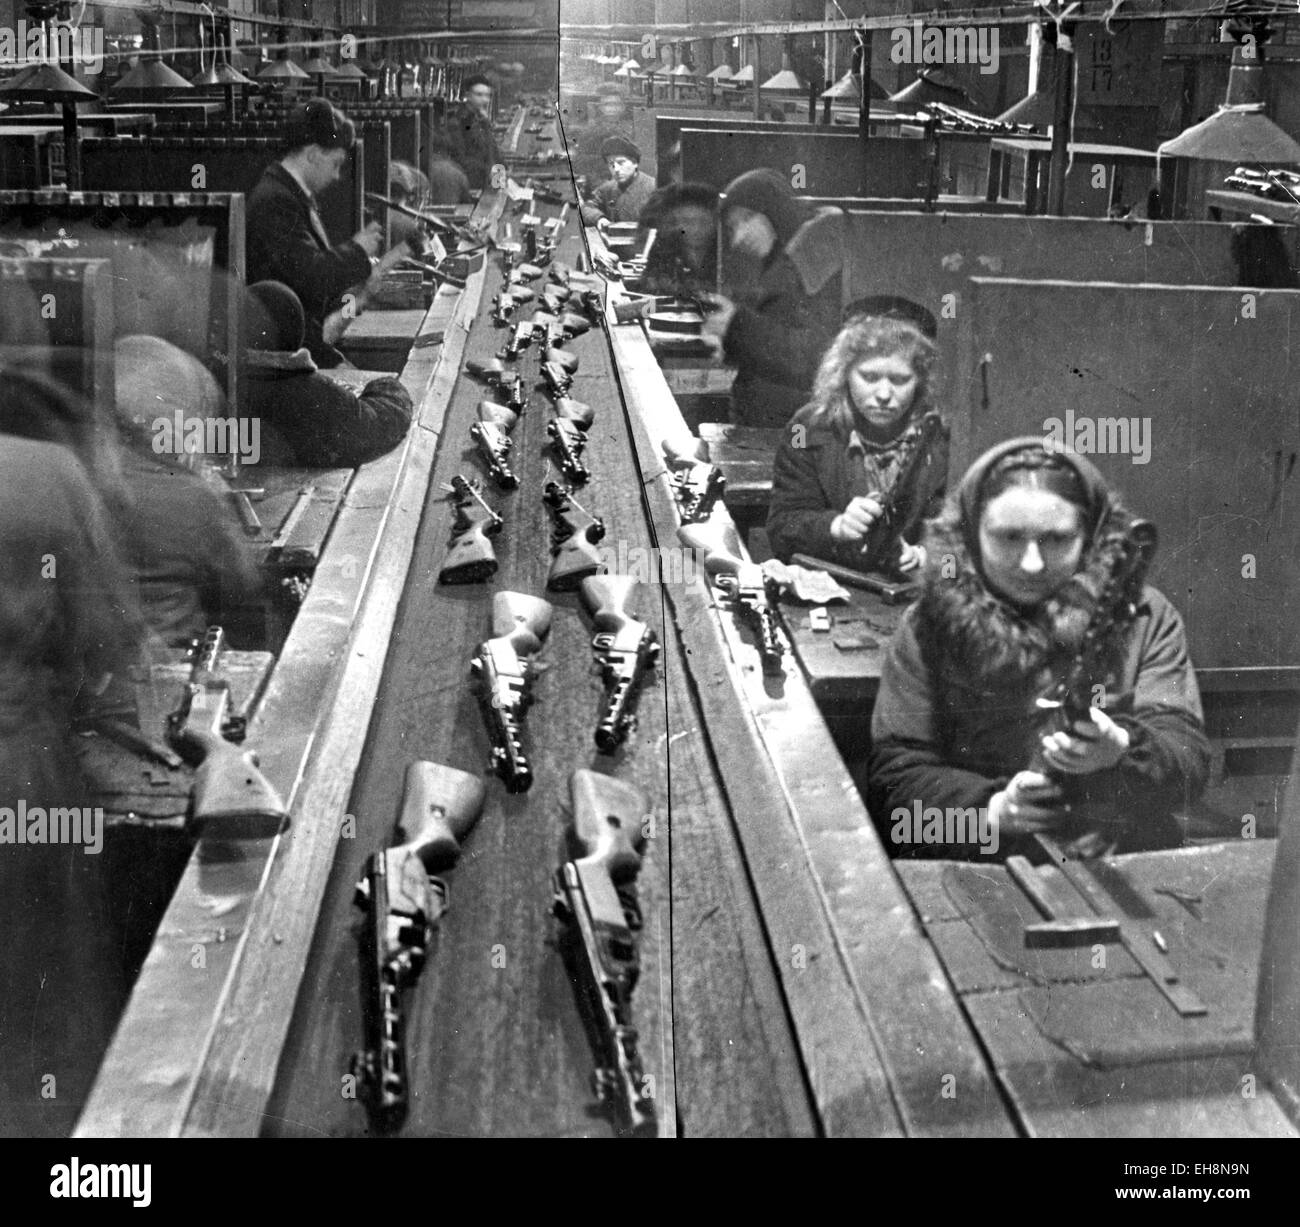 SOVIET ARMAMENTS Women workers fitting out  PPSH-41 submachine guns on a factory production line about 1943 - Stock Image